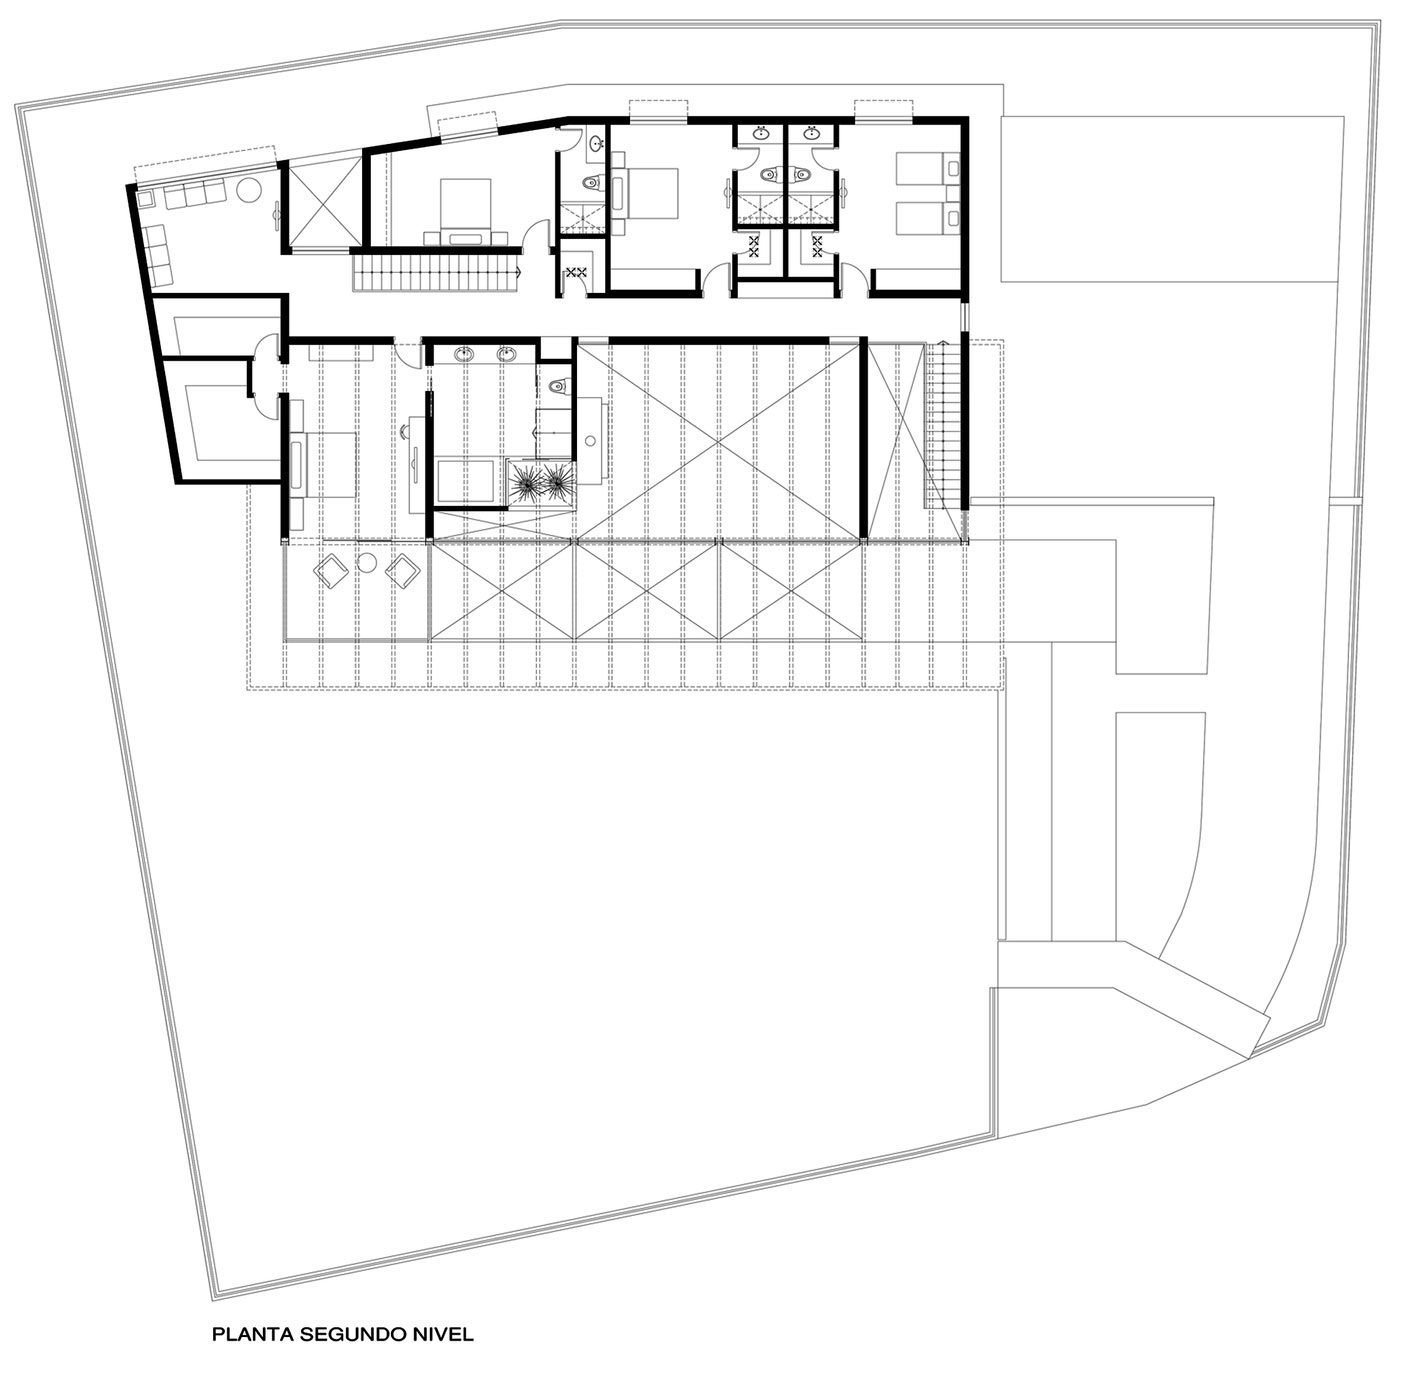 Second Floor Plan, Imposing Family Home in Lima, Peru